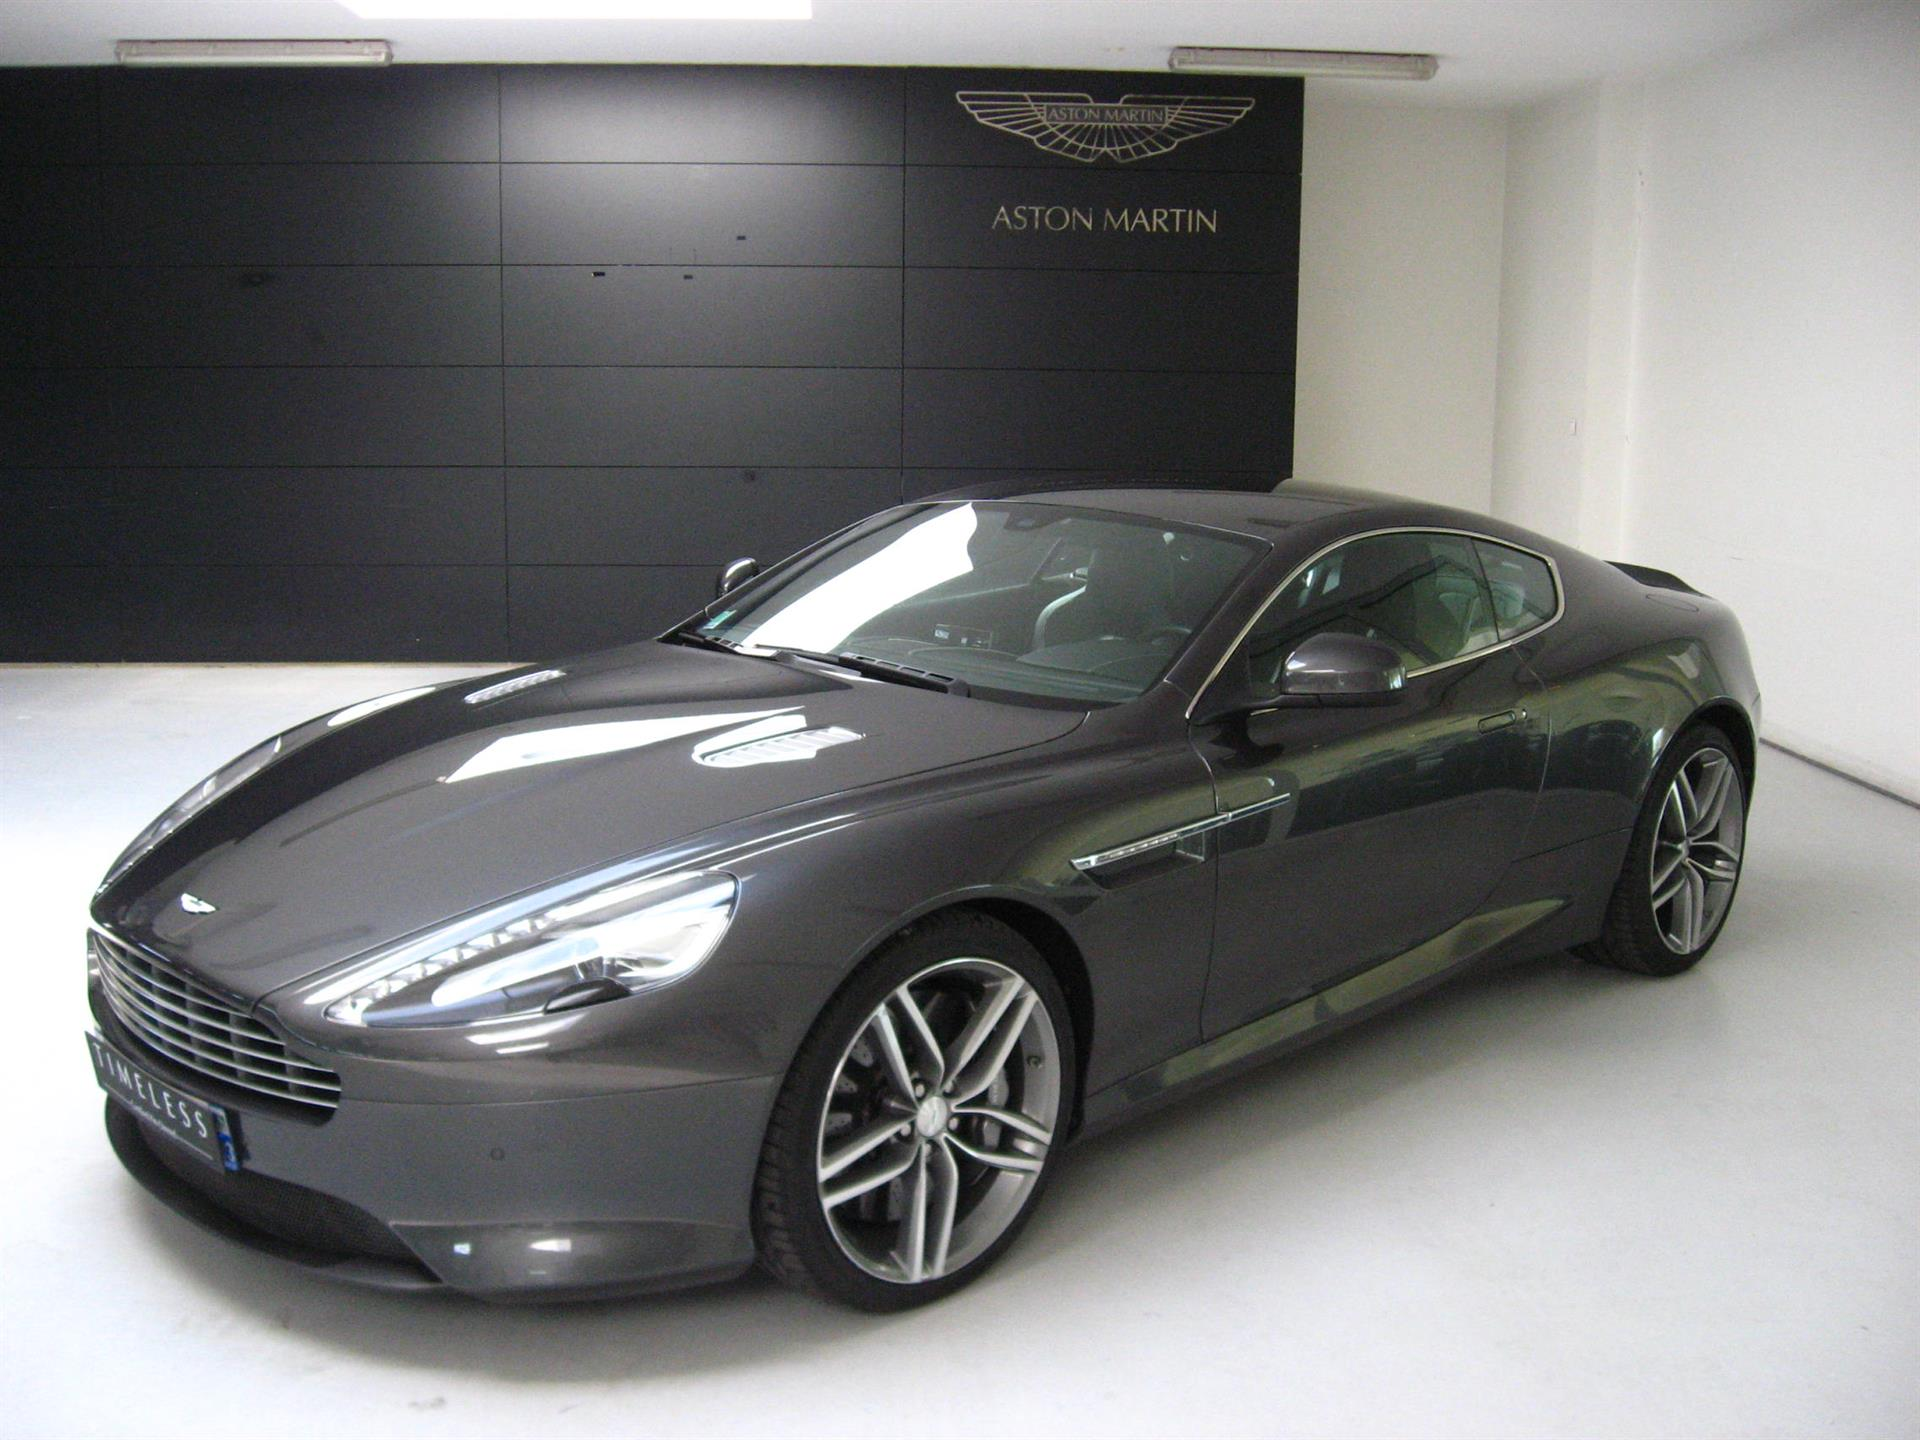 aston martin lagonda pre owned used aston martins car details db9 coupe dv 080 mj. Black Bedroom Furniture Sets. Home Design Ideas